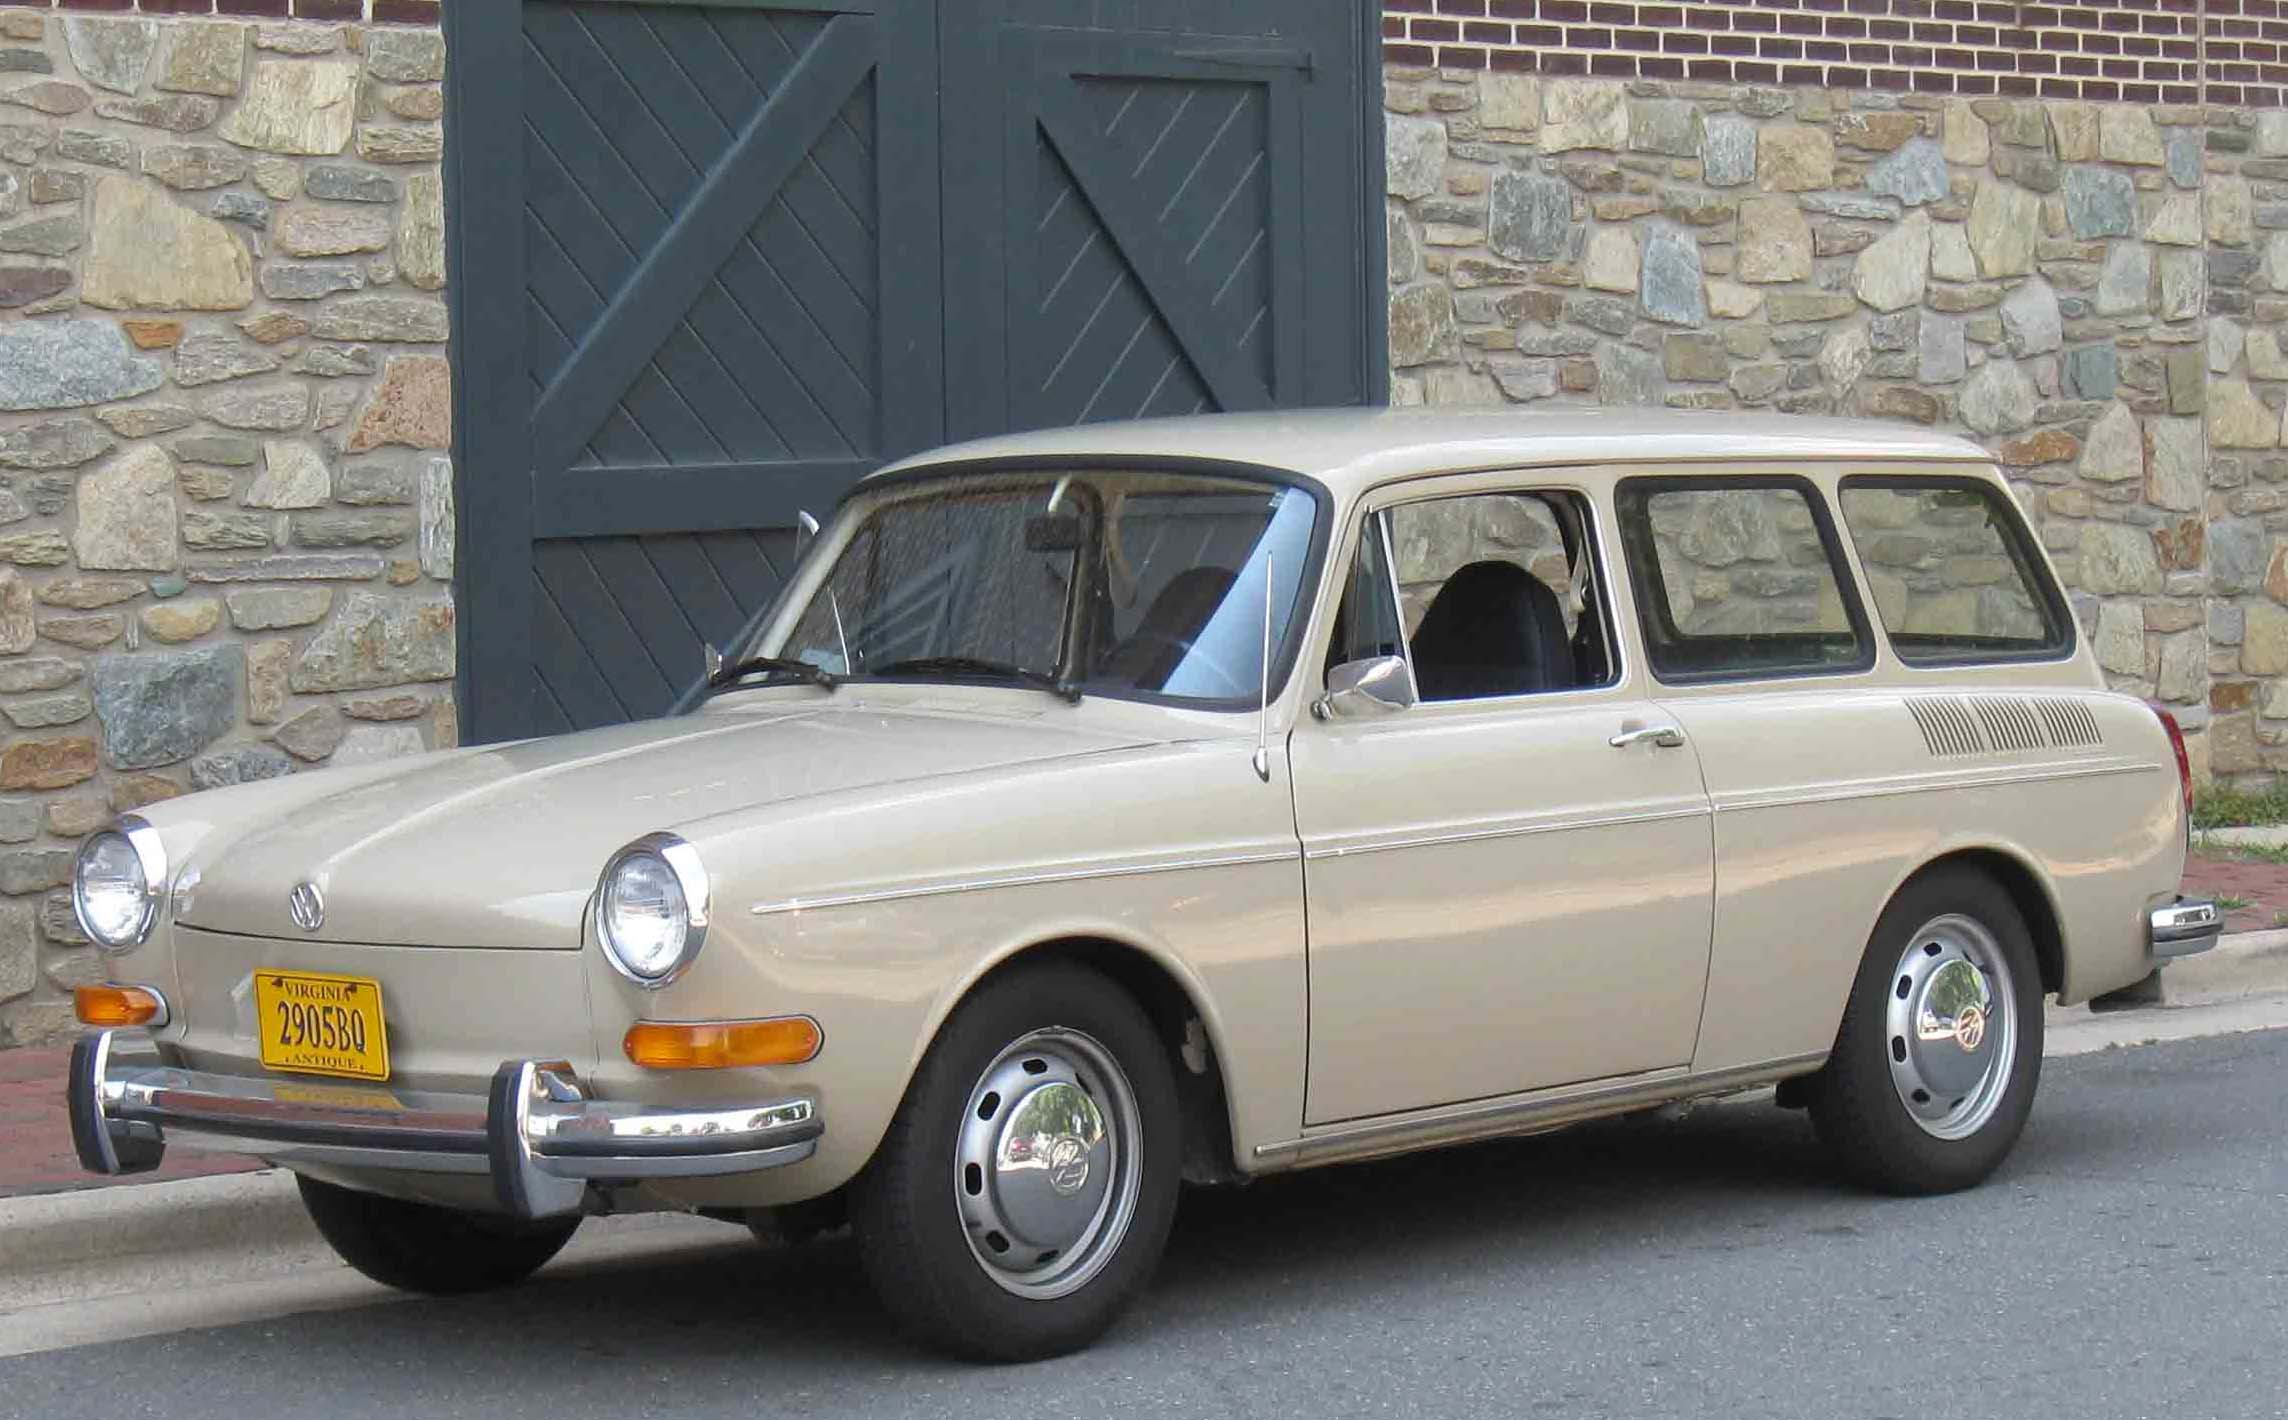 College Station Ford >> Classic Used Oil Generators: 1973 VW Squareback - NORA, An Association of Responsible Recyclers